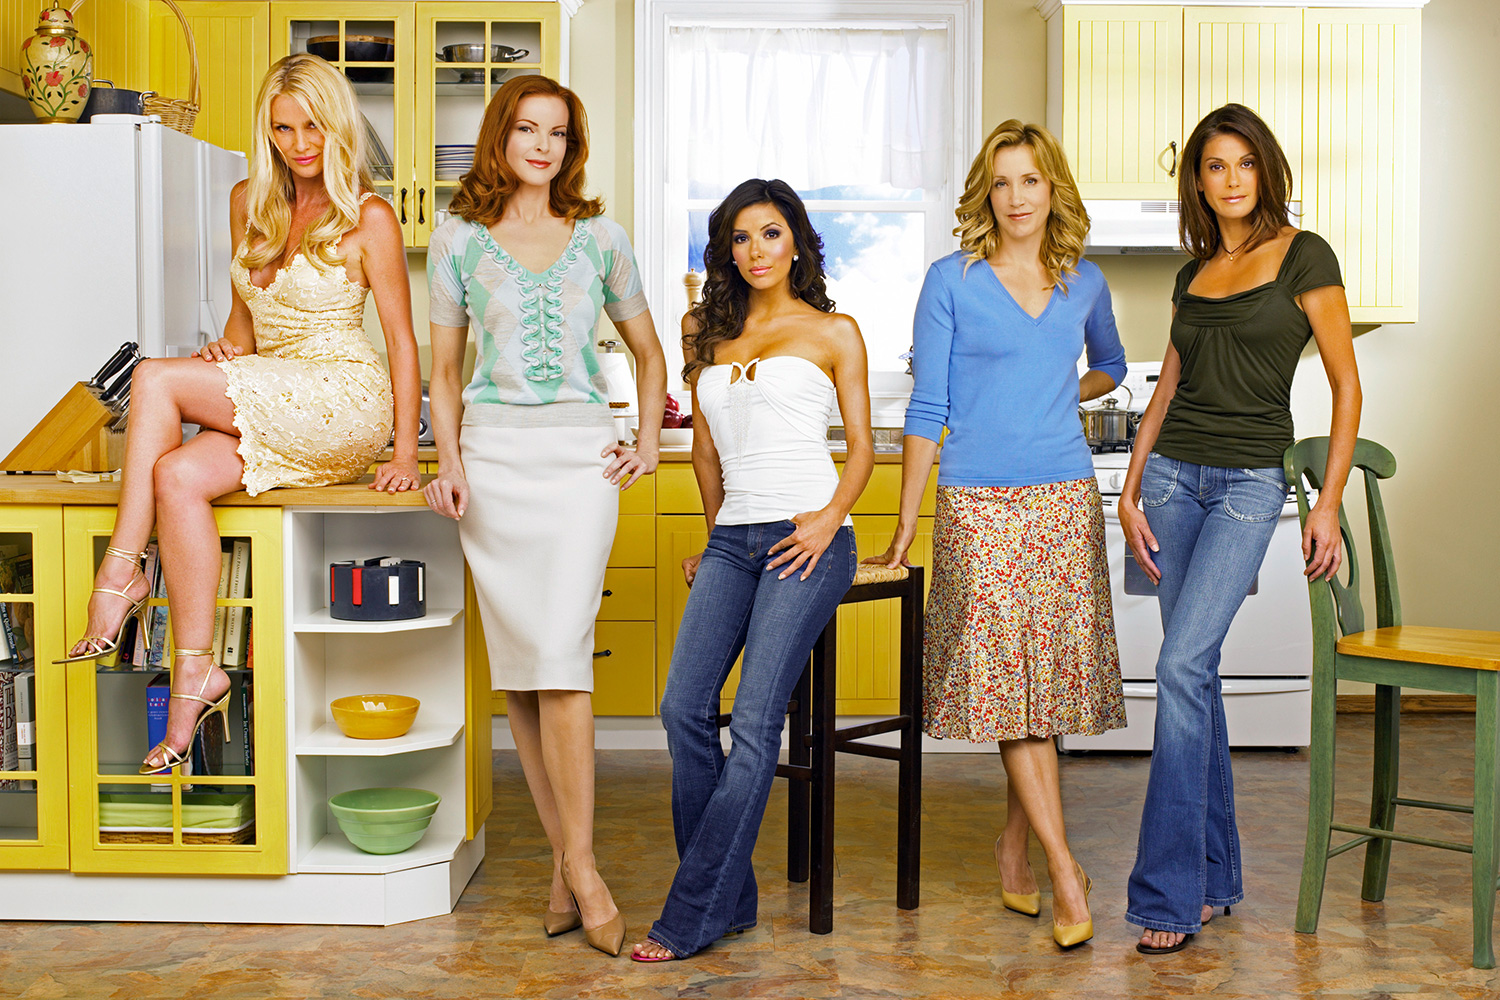 "DESPERATE HOUSEWIVES - ""Desperate Housewives"" stars Nicollette Sheridan as Edie Britt, Marcia Cross as Bree Van De Kamp, Eva Longoria as Gabrielle Solis, Felicity Huffman as Lynette Scavo and Teri Hatcher as Susan Mayer"